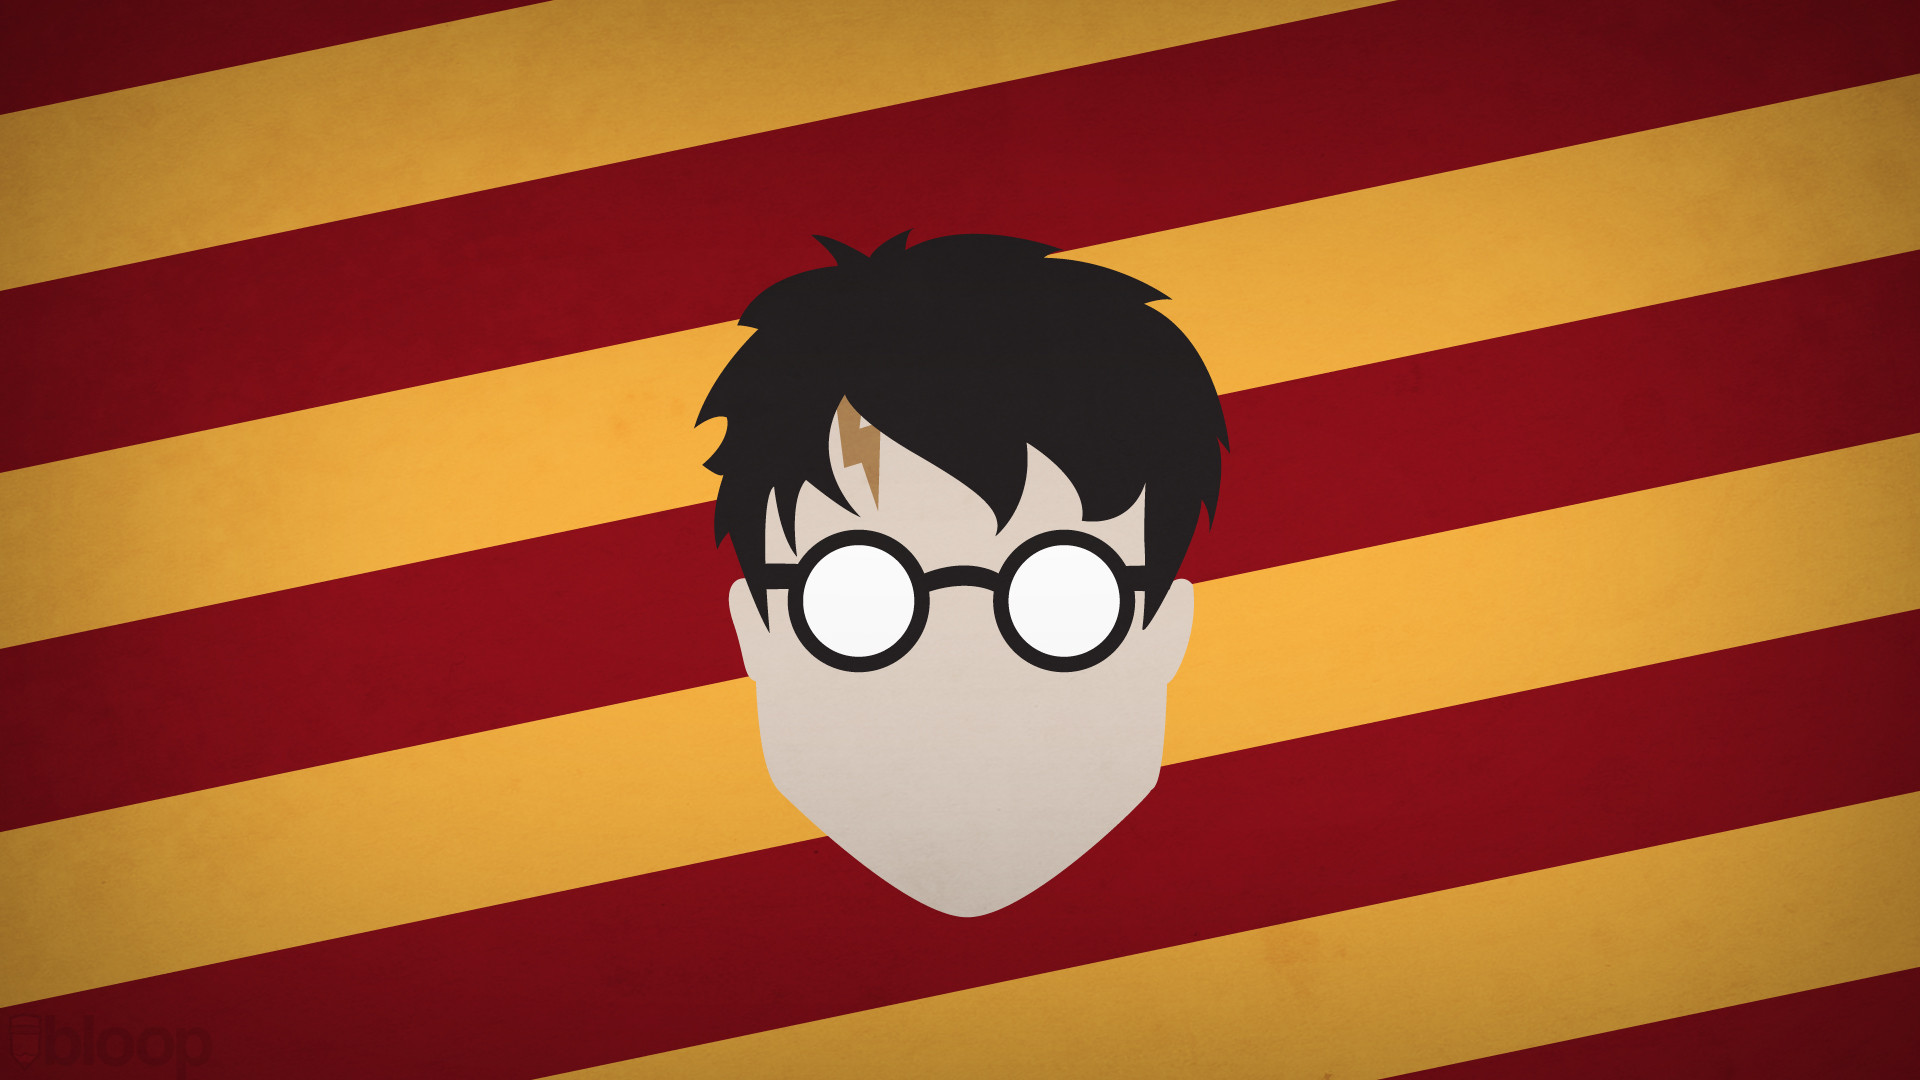 Lg Animated Wallpaper Harry Potter Full Hd Wallpaper And Background Image